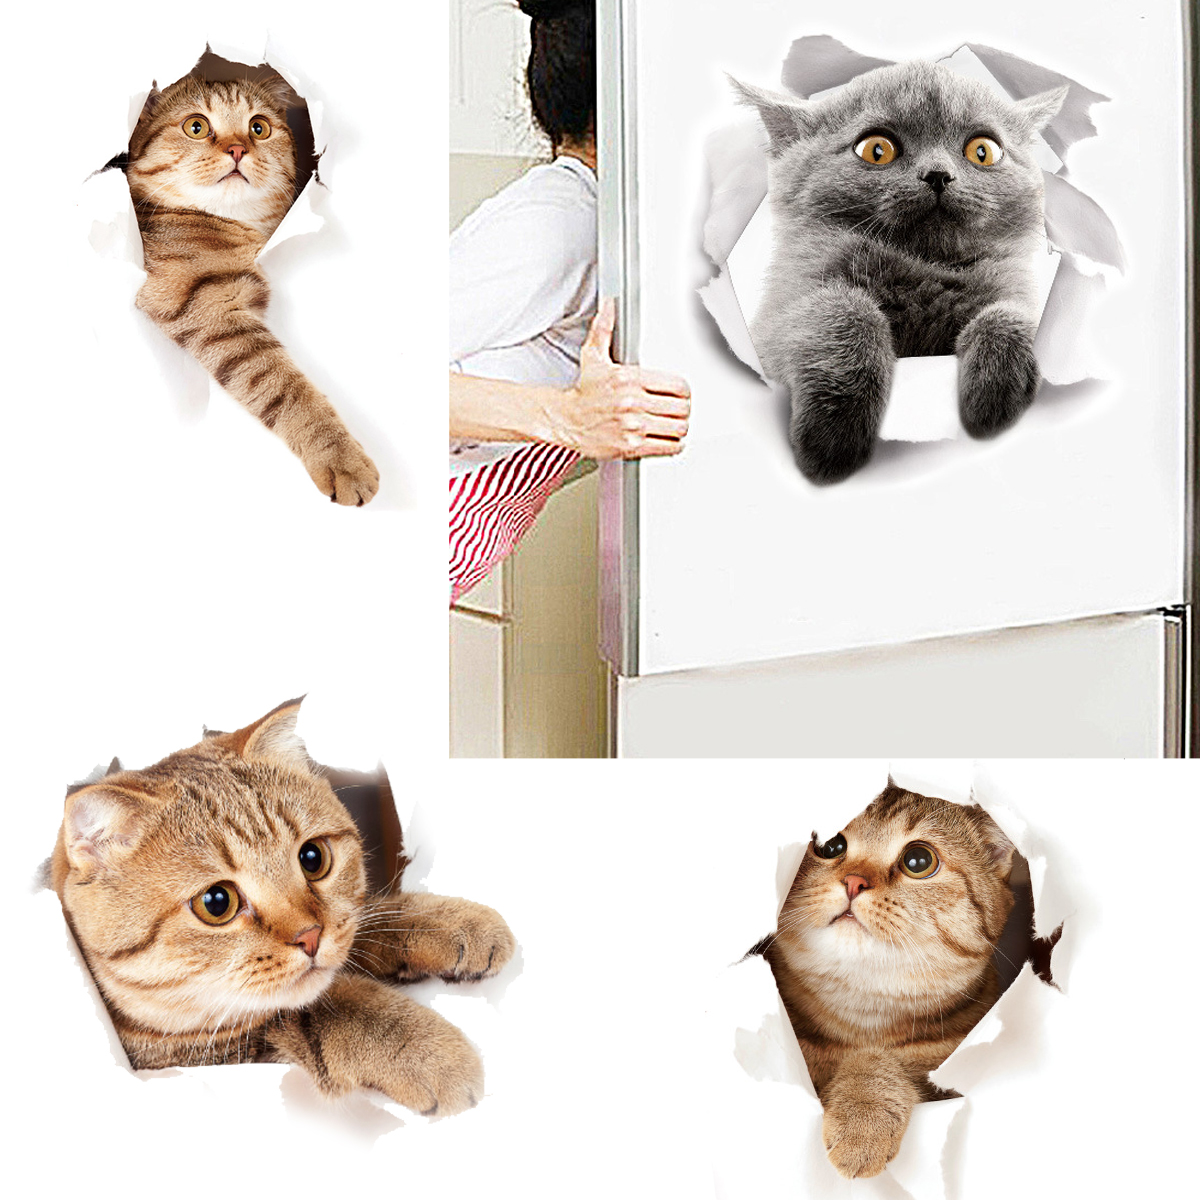 Cartoon Animal 3d Toilet Stickers on The Toilet Seat Cute Cats PVC Wall Sticker Bathroom Refrigerator Door Decor Stickers Decals(China)